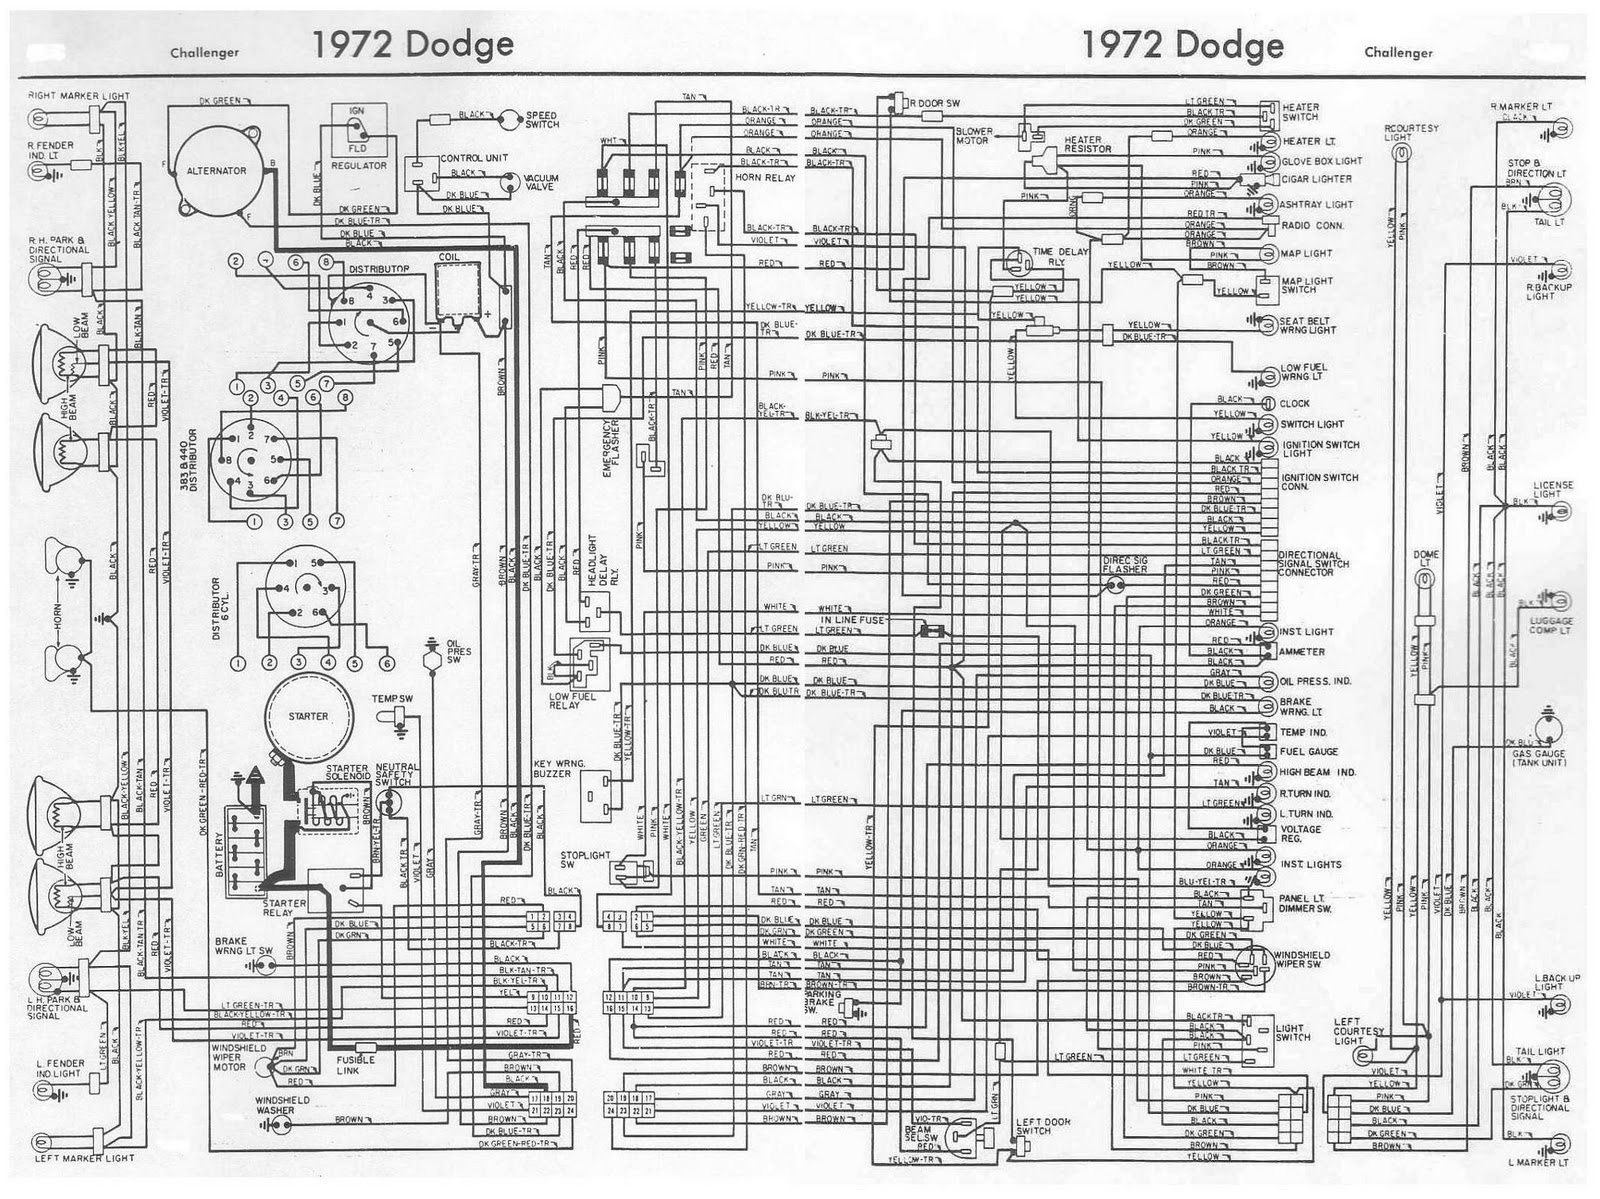 1972 dodge challenger wiring diagram detailed schematic diagrams rh 4rmotorsports com 1971 dodge challenger wiring diagram 1972 dodge challenger wiring diagram